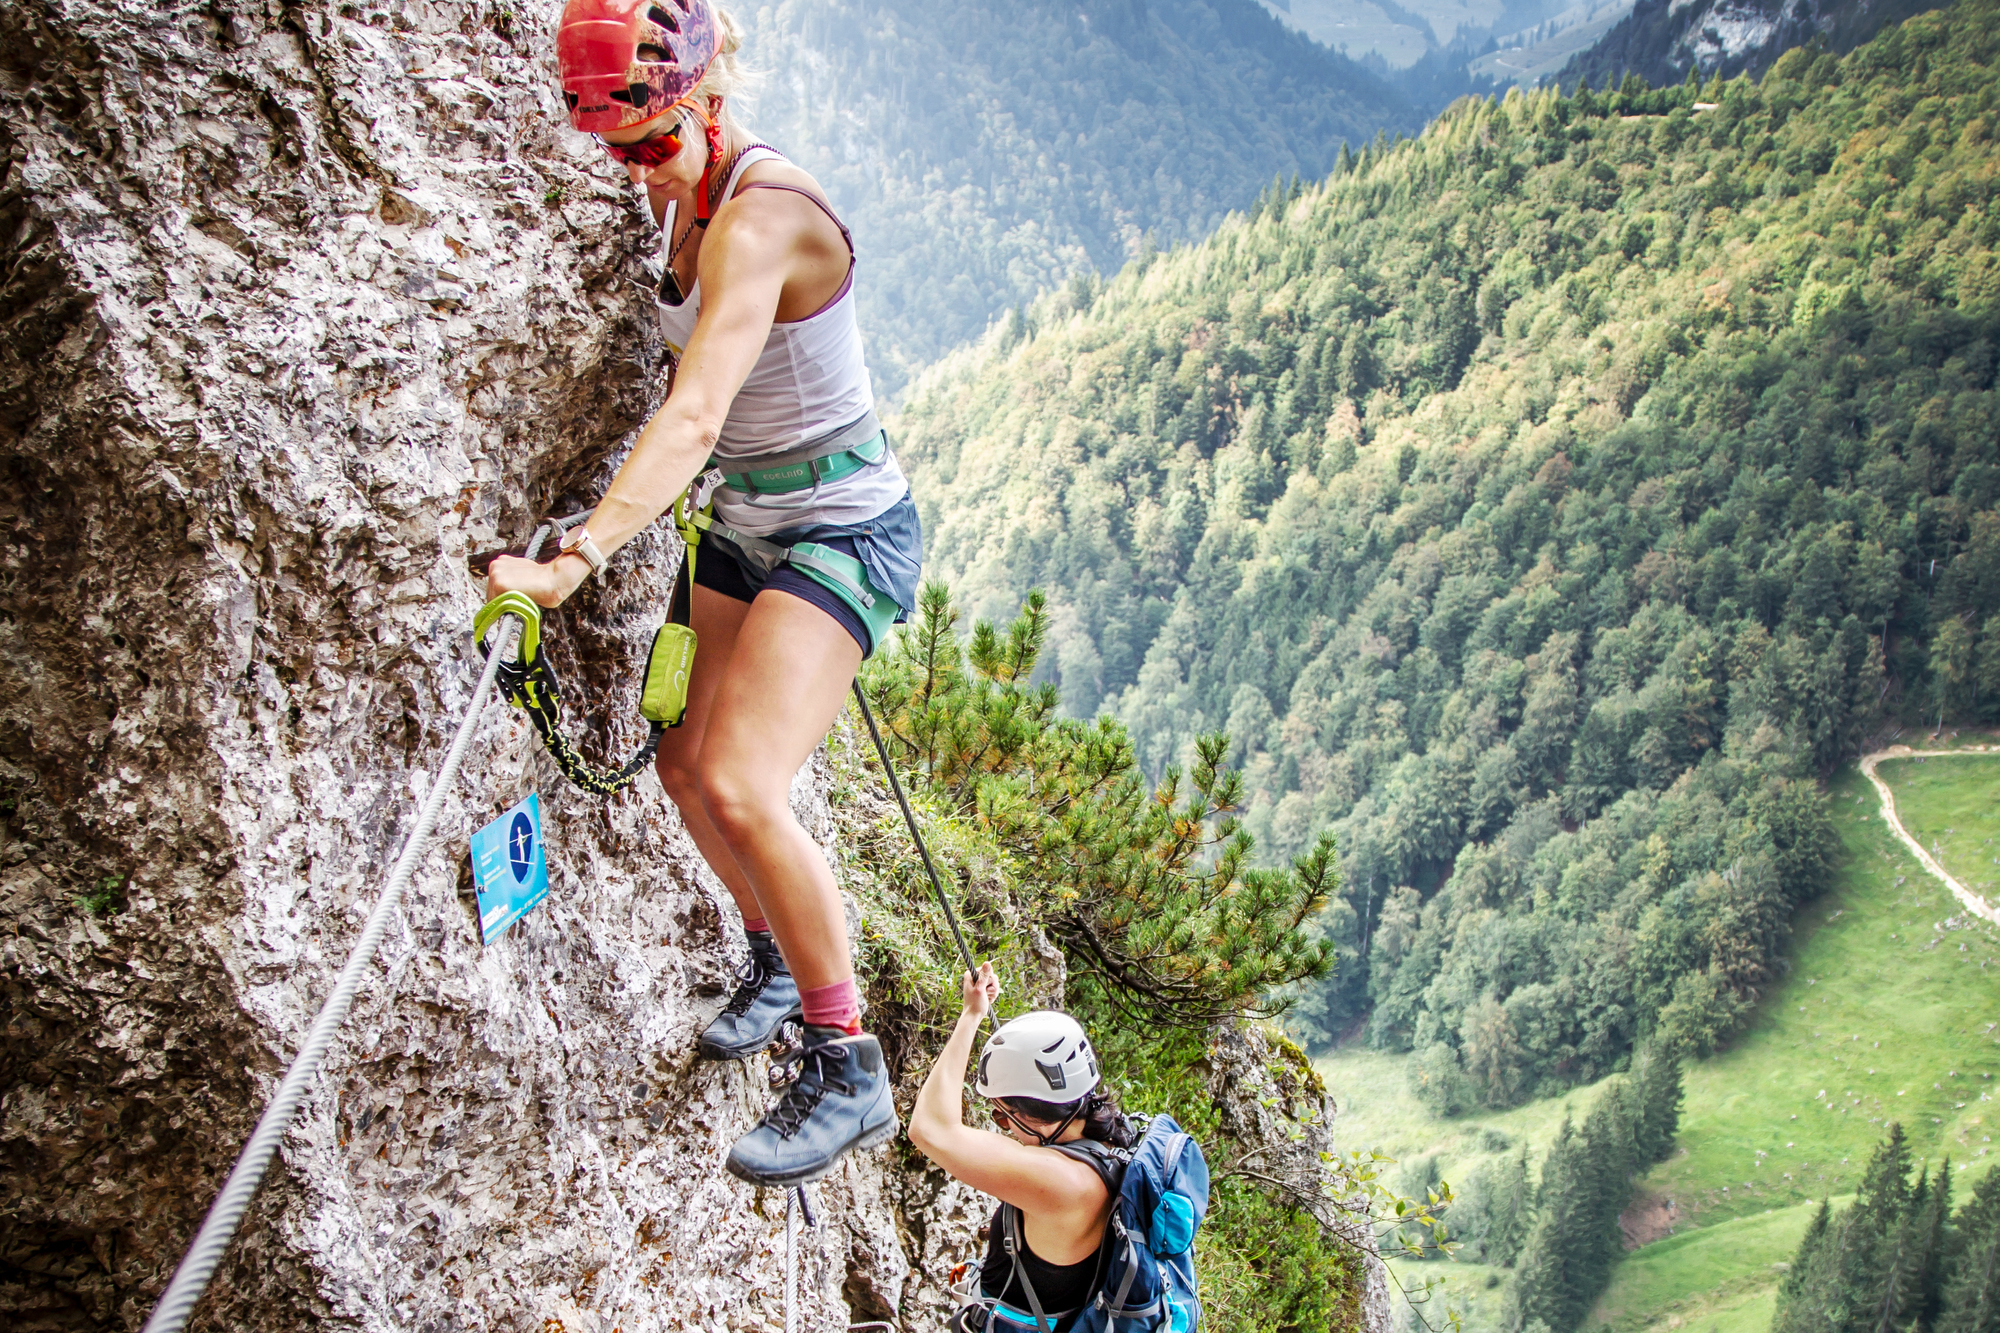 Kletterfotografie unterwegs am Klettersteig Ottenalm bei den womens power days